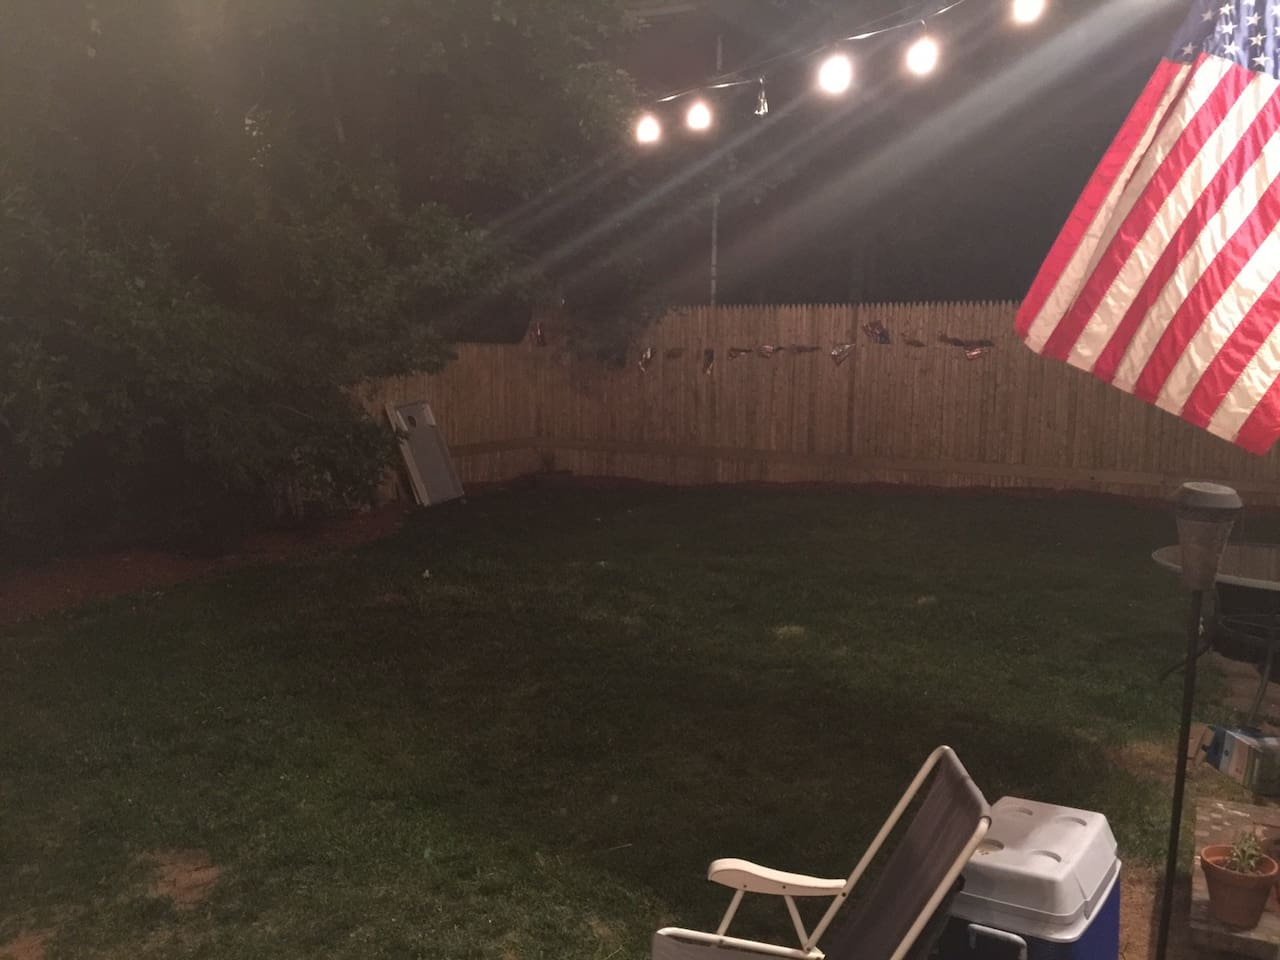 This has got to be the biggest backyard within city limits! Plenty of room to play your favorite lawn games or sit back, relax, and enjoy the hammock in the privacy of the fully fenced-in yard.